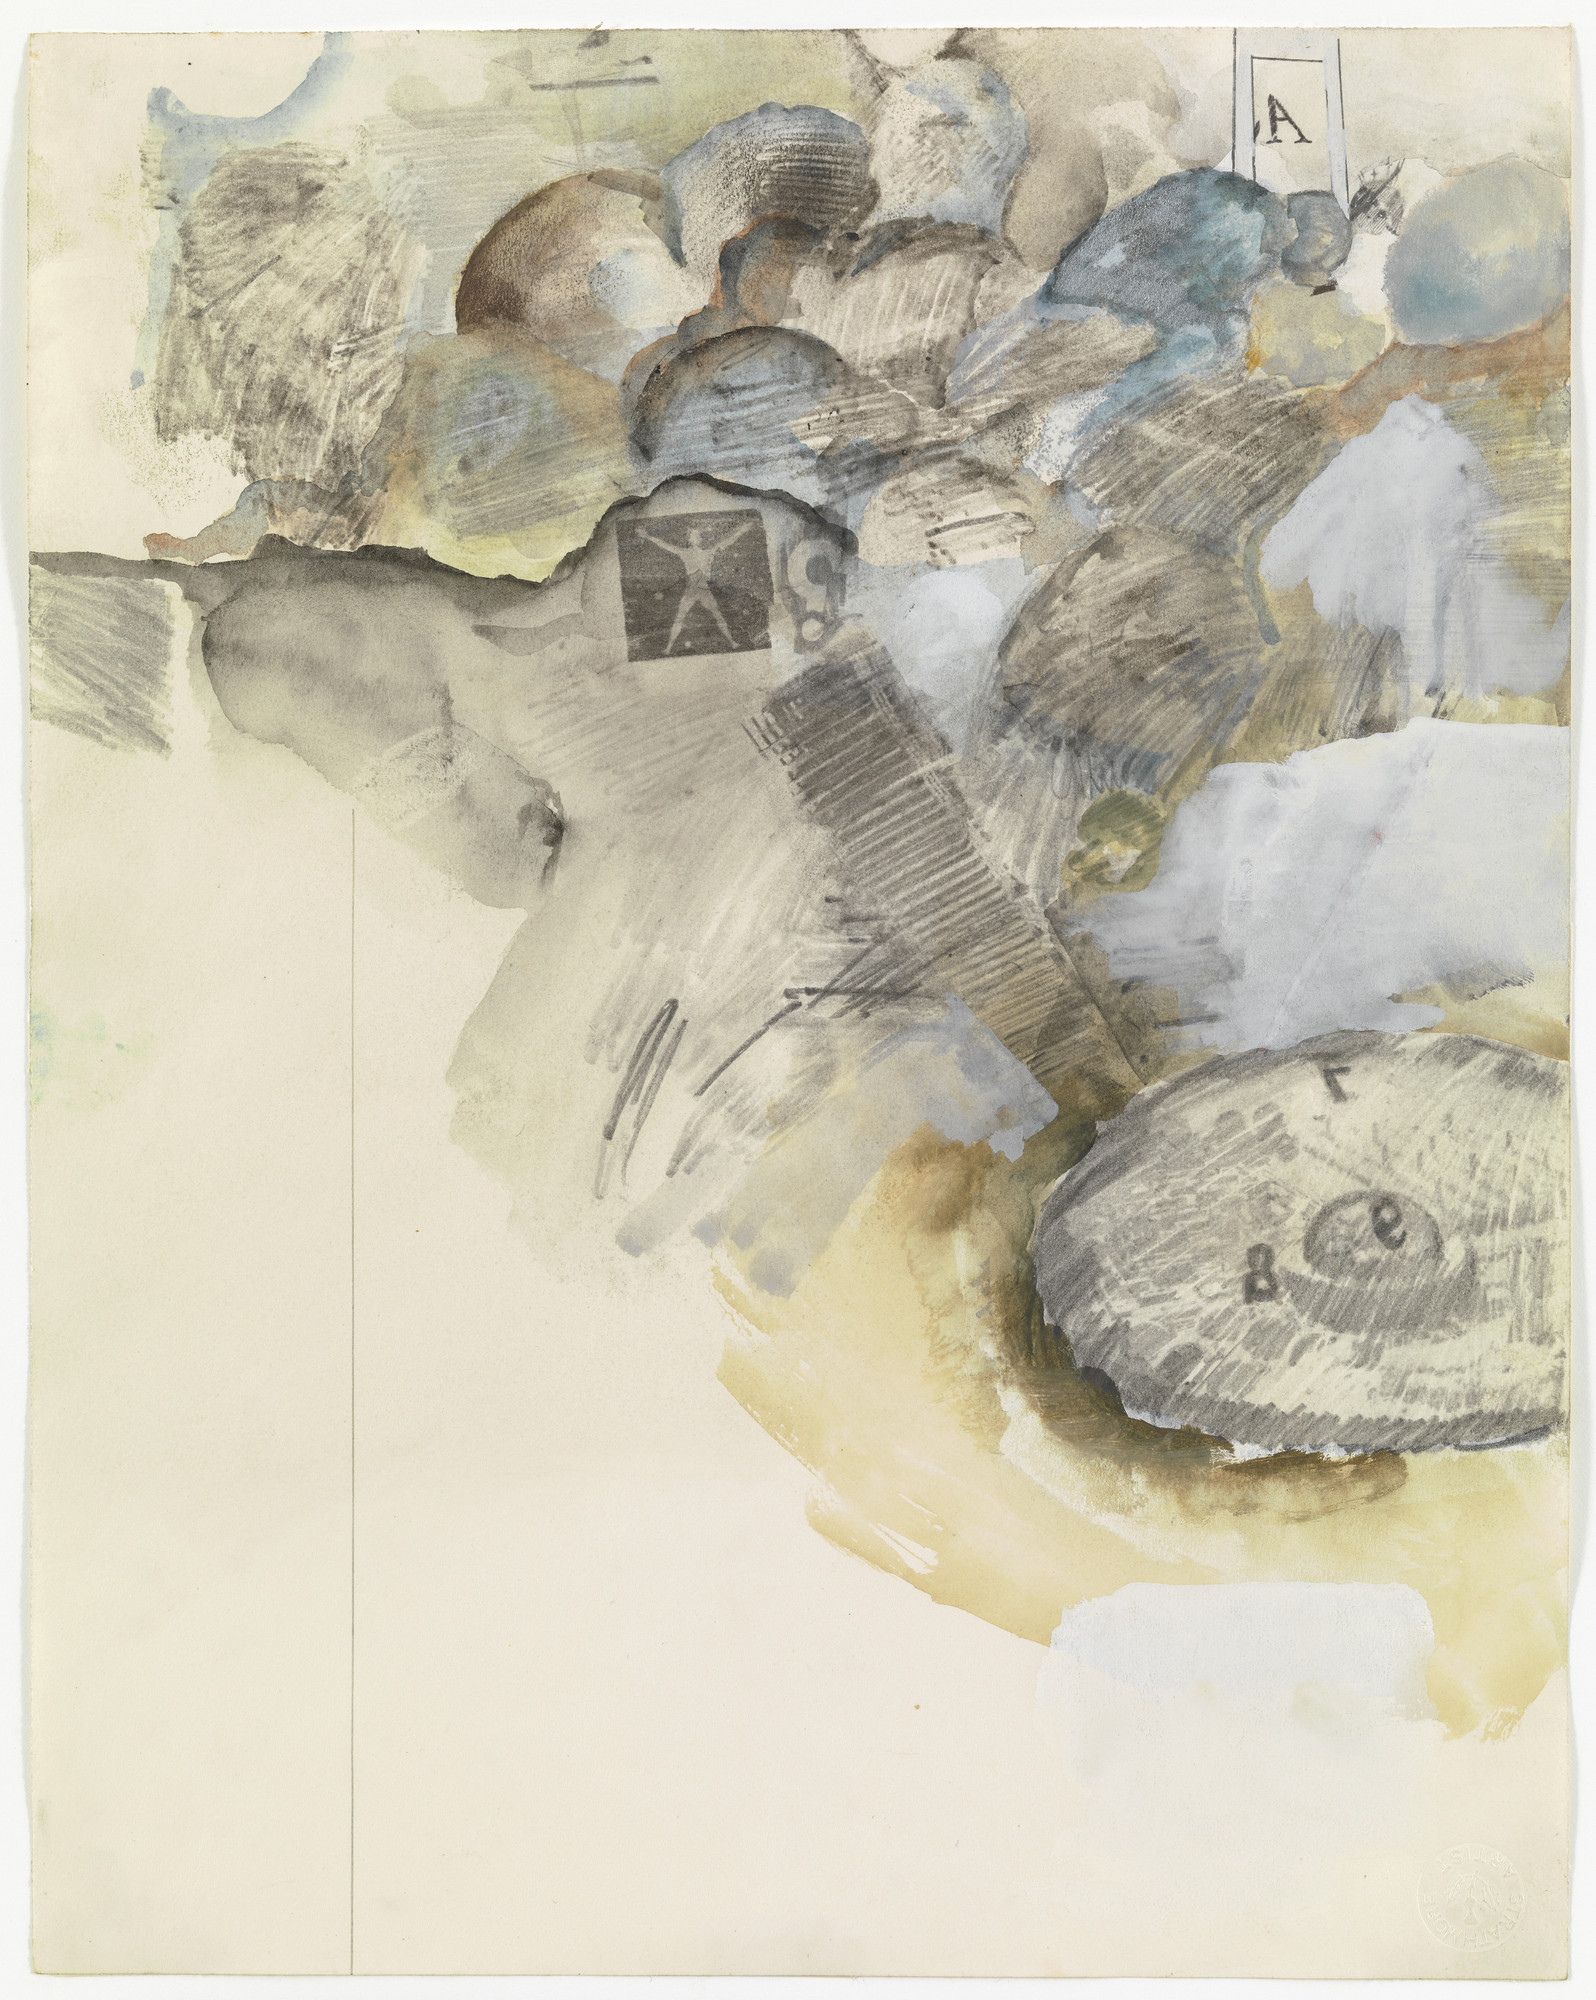 Robert Rauschenberg. Canto XI: Circle Six, The Heretics from the series Thirty-Four Illustrations for Dante's Inferno. (1959-60)